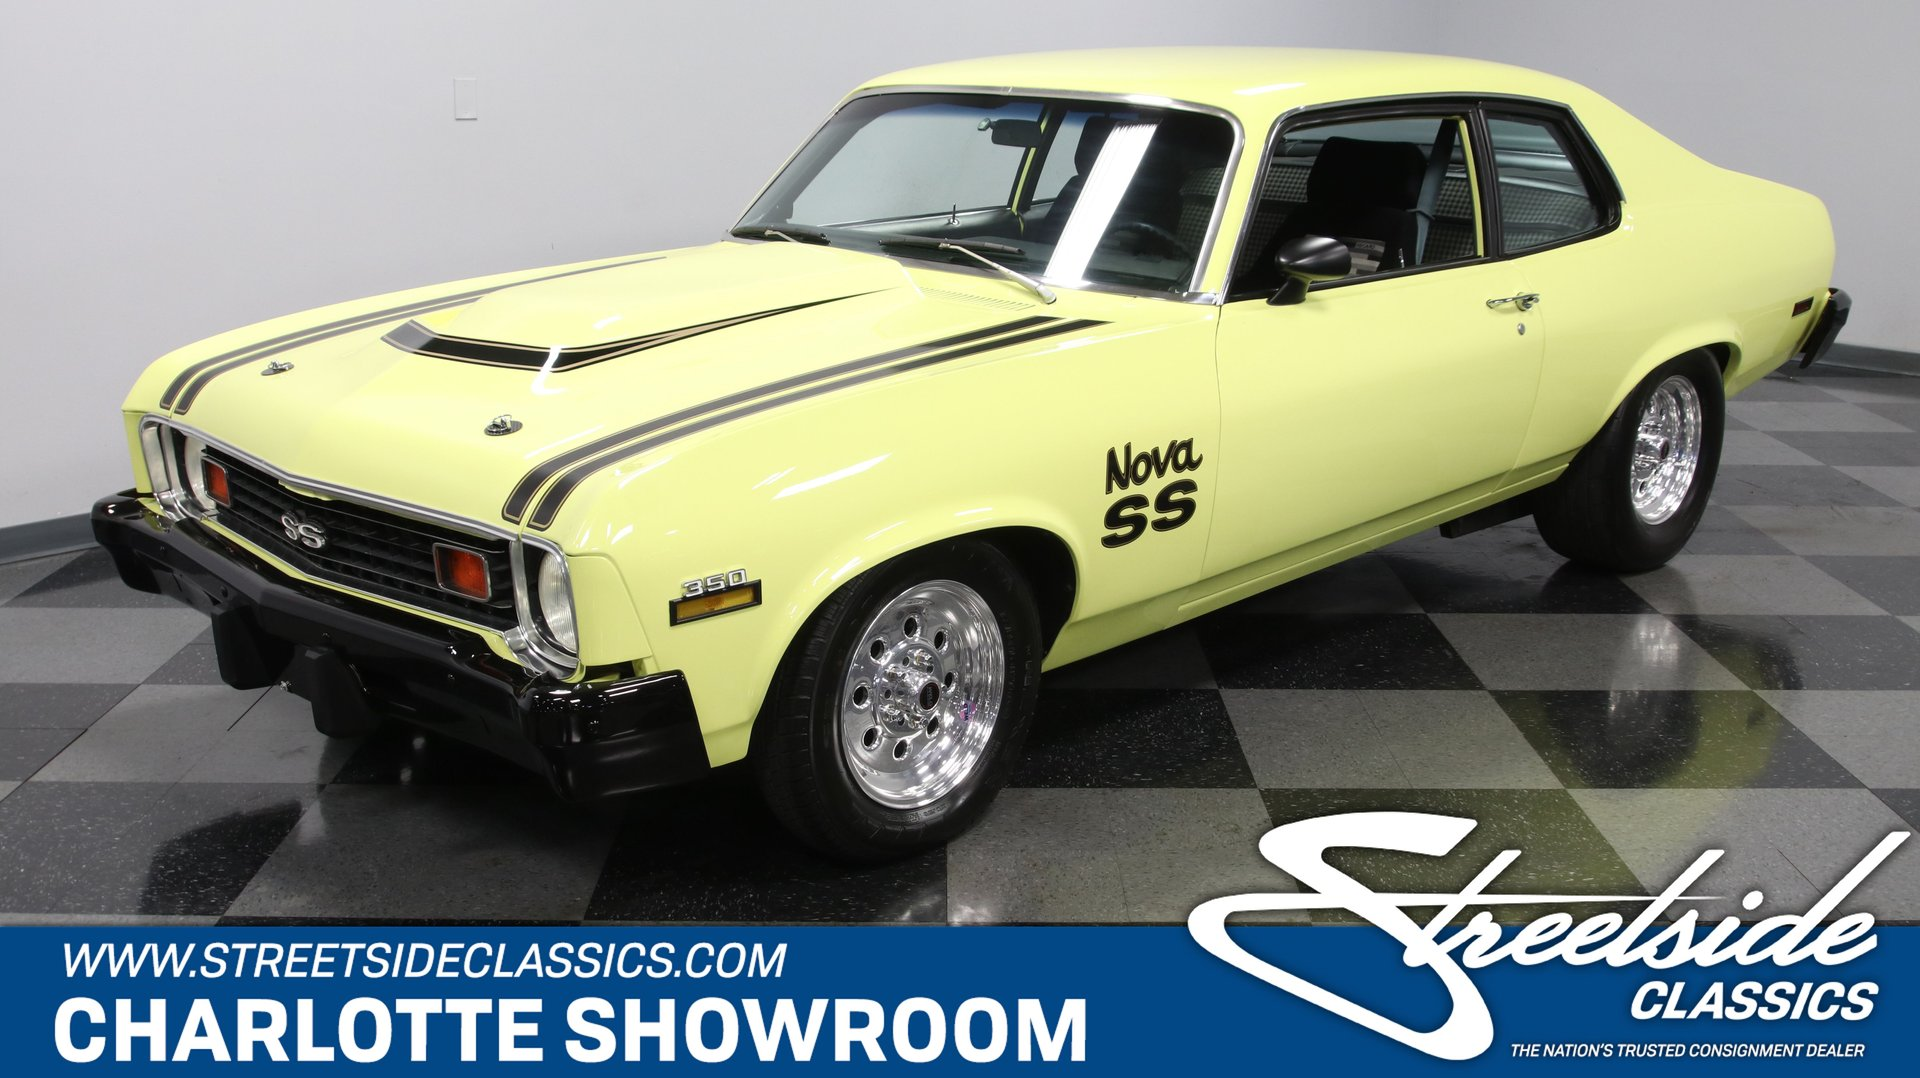 1974 Chevrolet Nova Classic Cars For Sale Streetside Classics The Nation S 1 Consignment Dealer